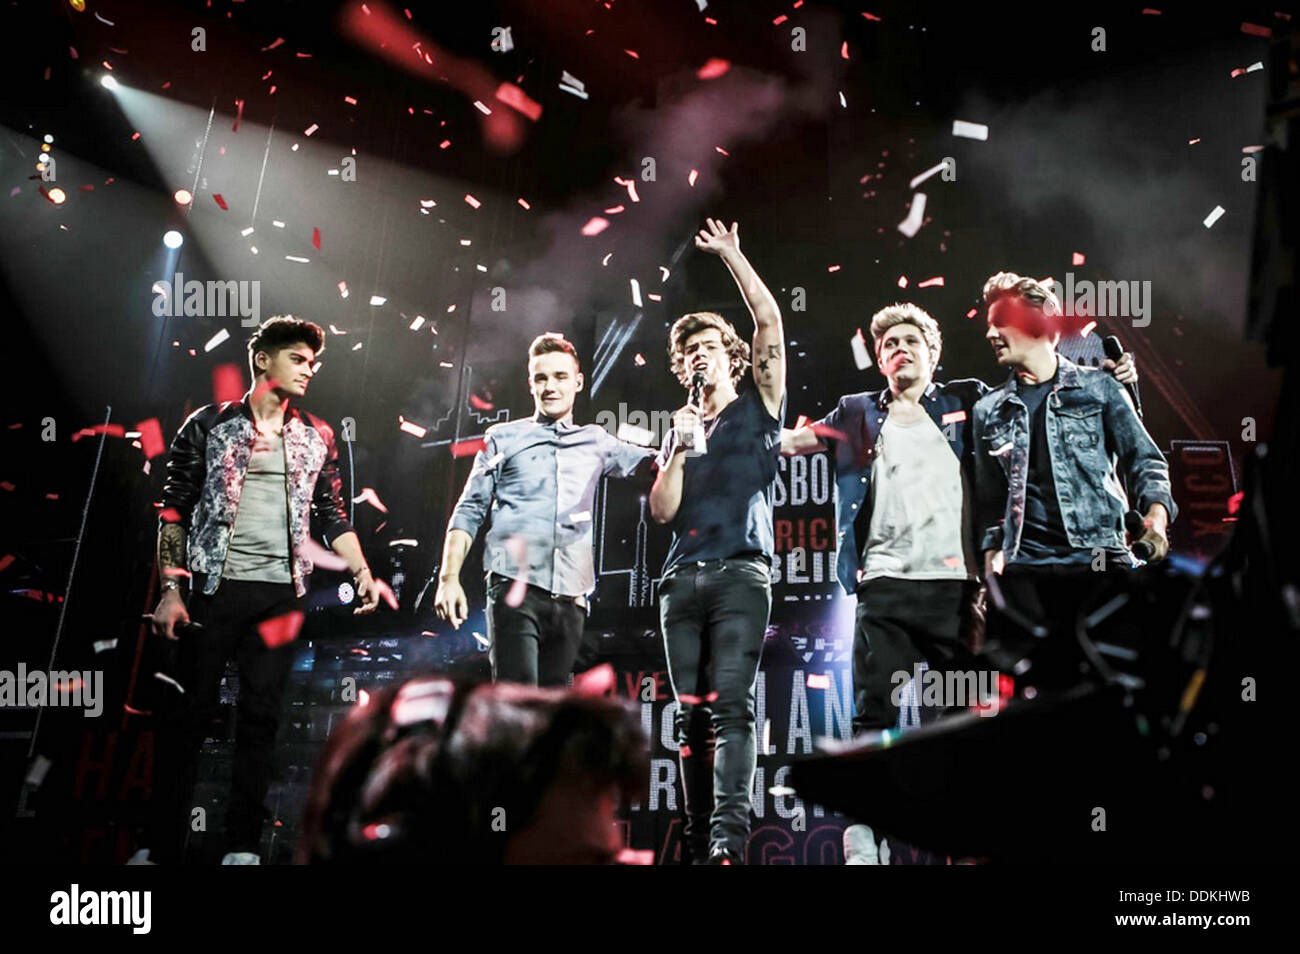 ONE DIRECTION: THIS IS US  2013 TriStar film - Stock Image